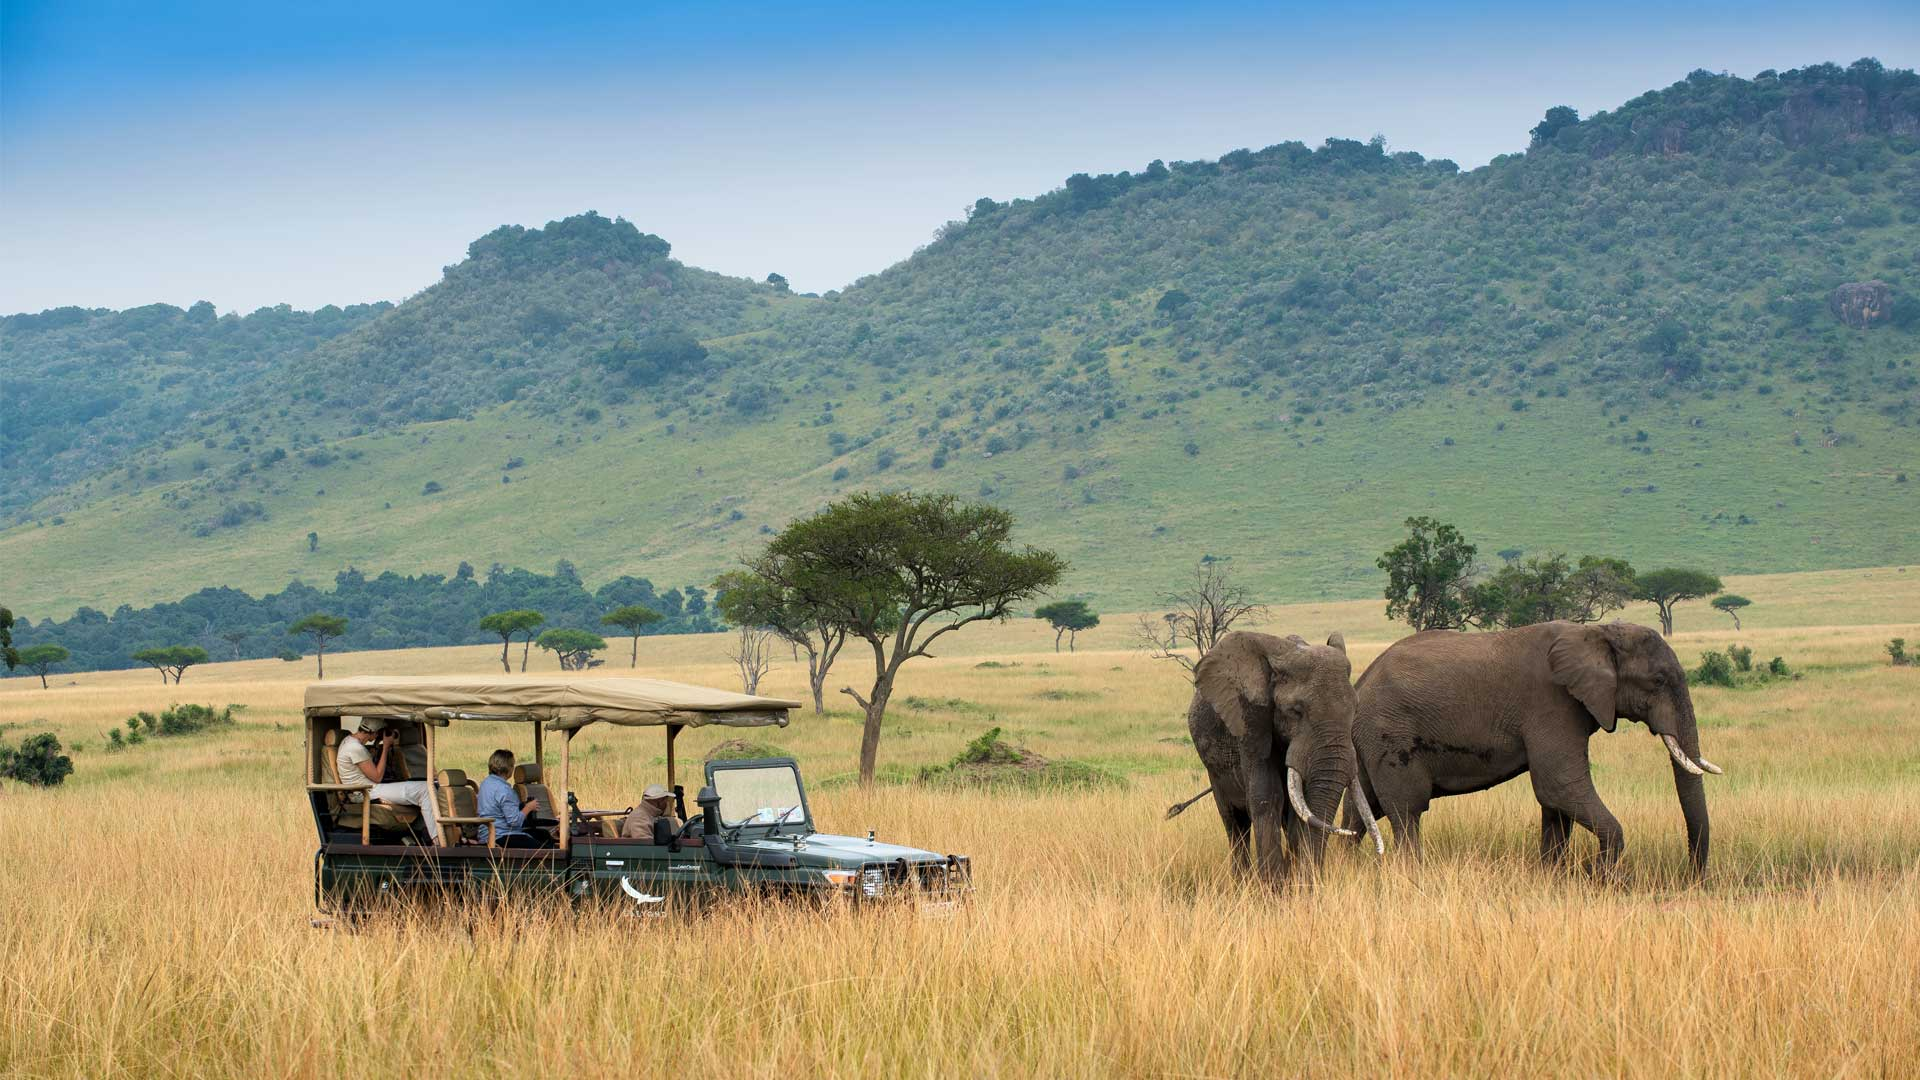 Seeing elephants on a game drive in Masai Mara